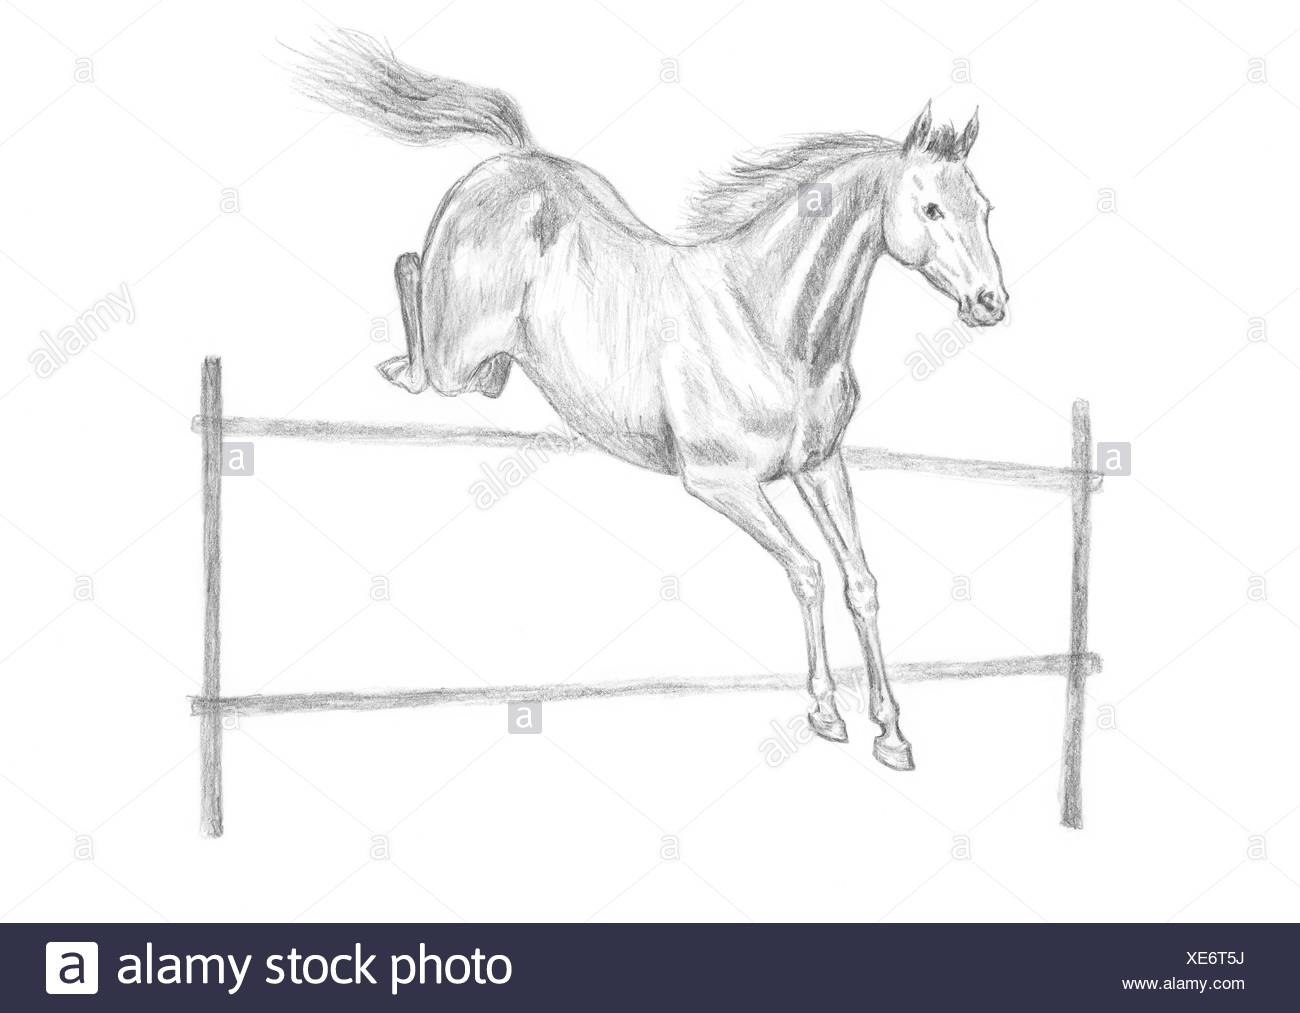 Jumping Horse Drawing Stock Photo Alamy